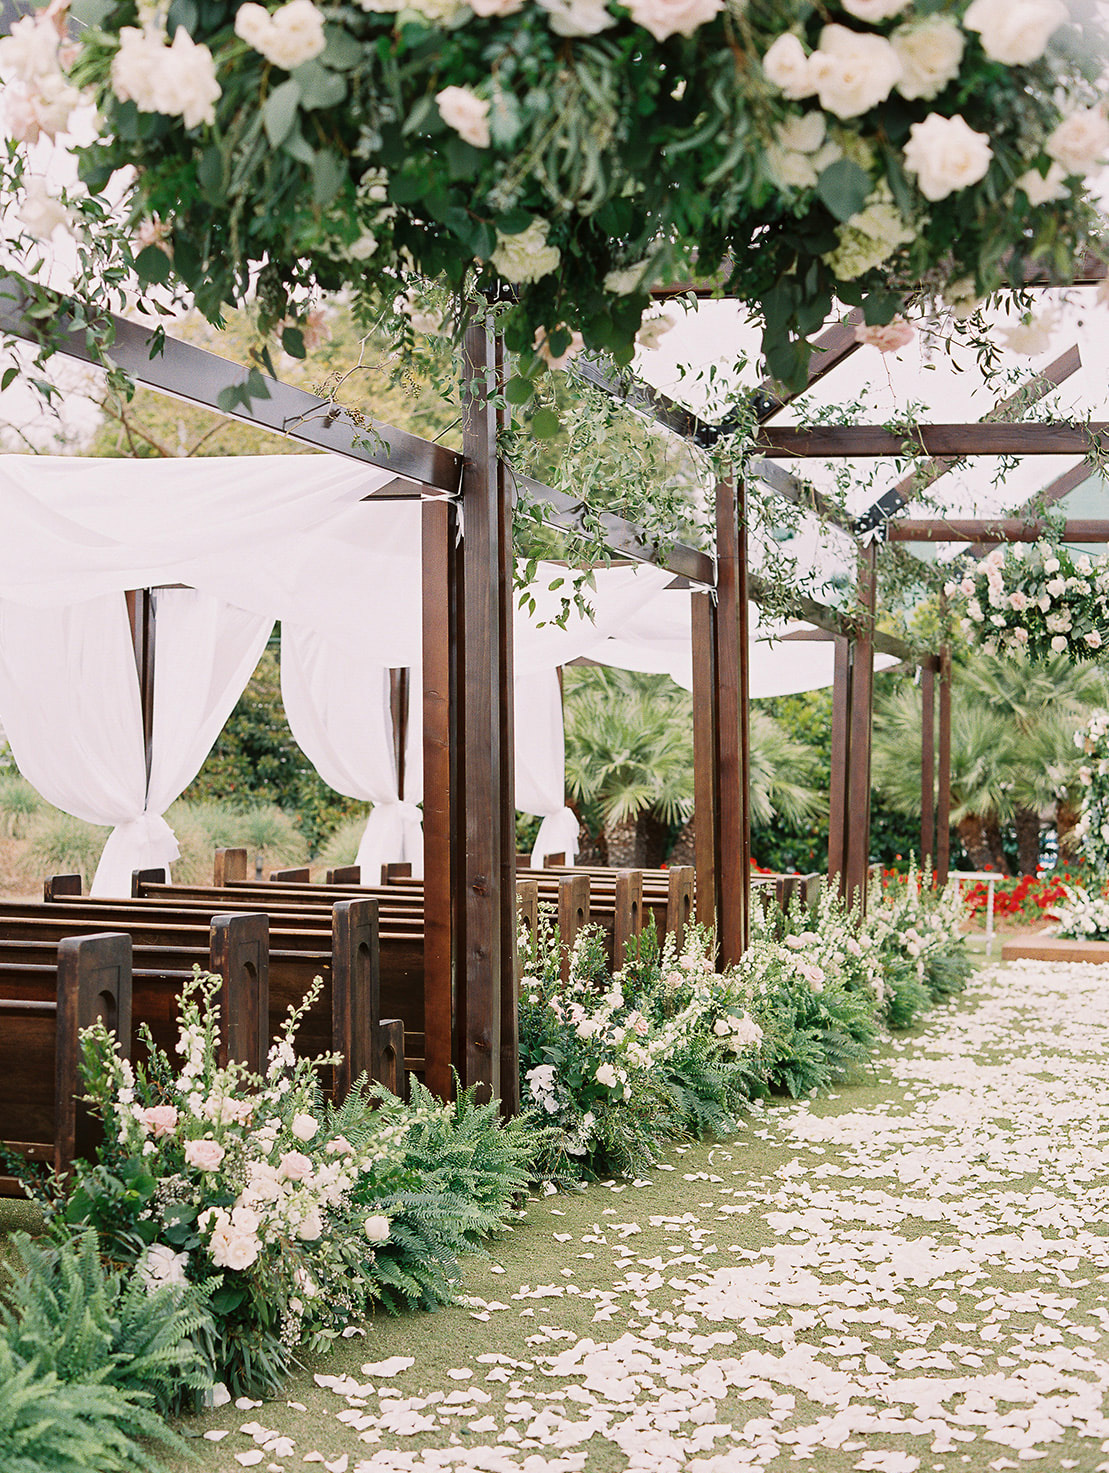 outdoor ceremony with wooden pews and flower petals in aisle